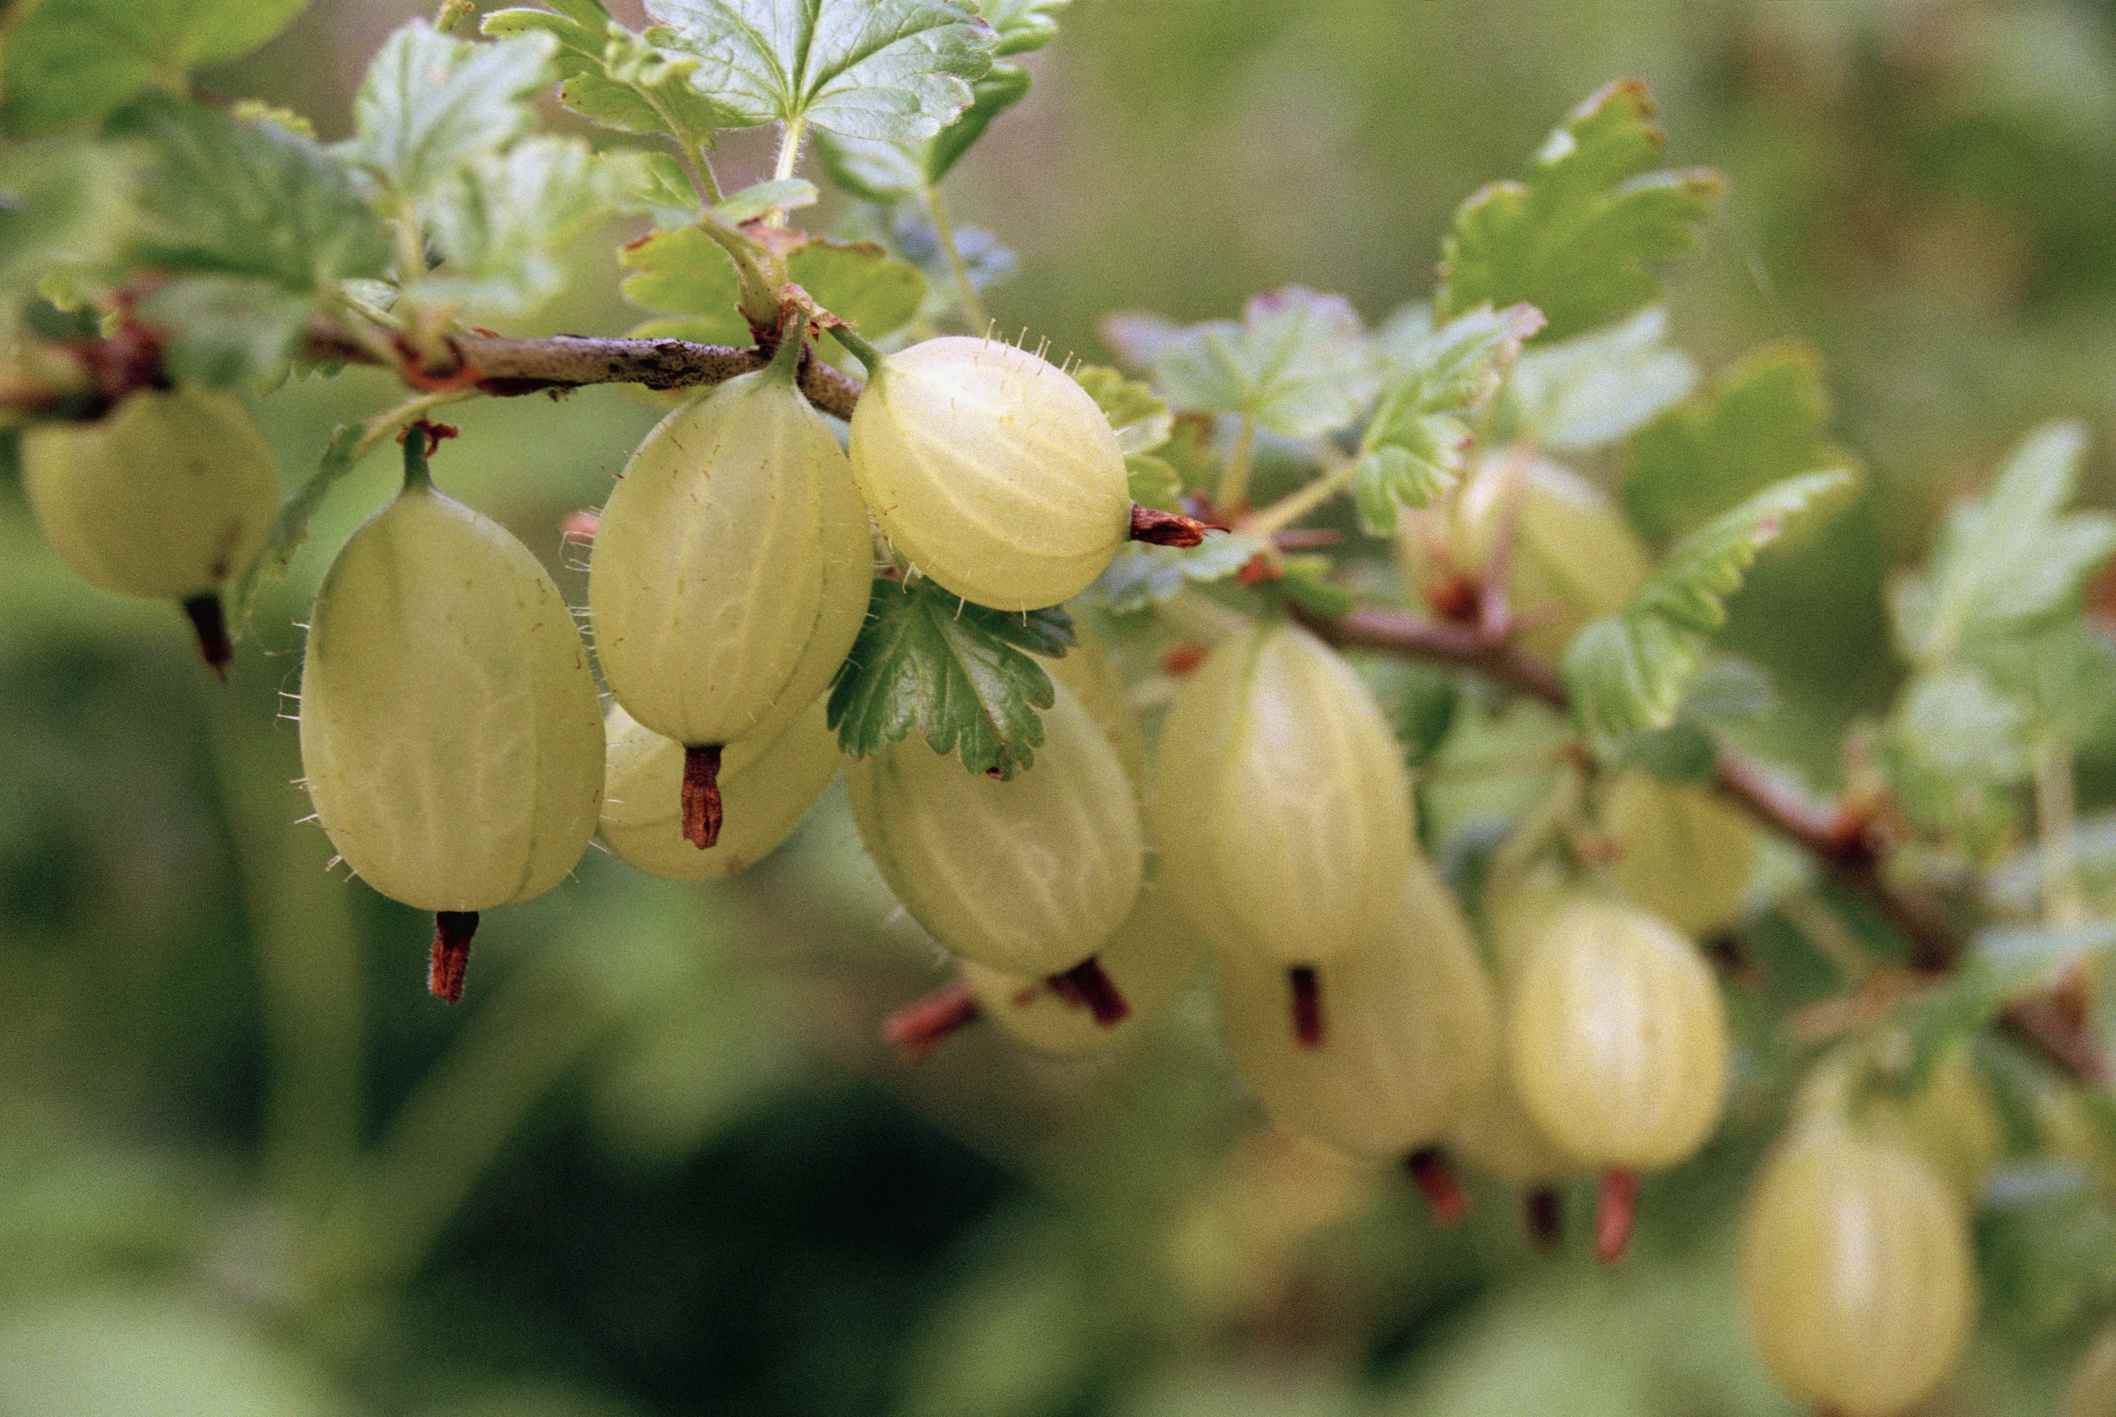 Detail of gooseberries on a branch